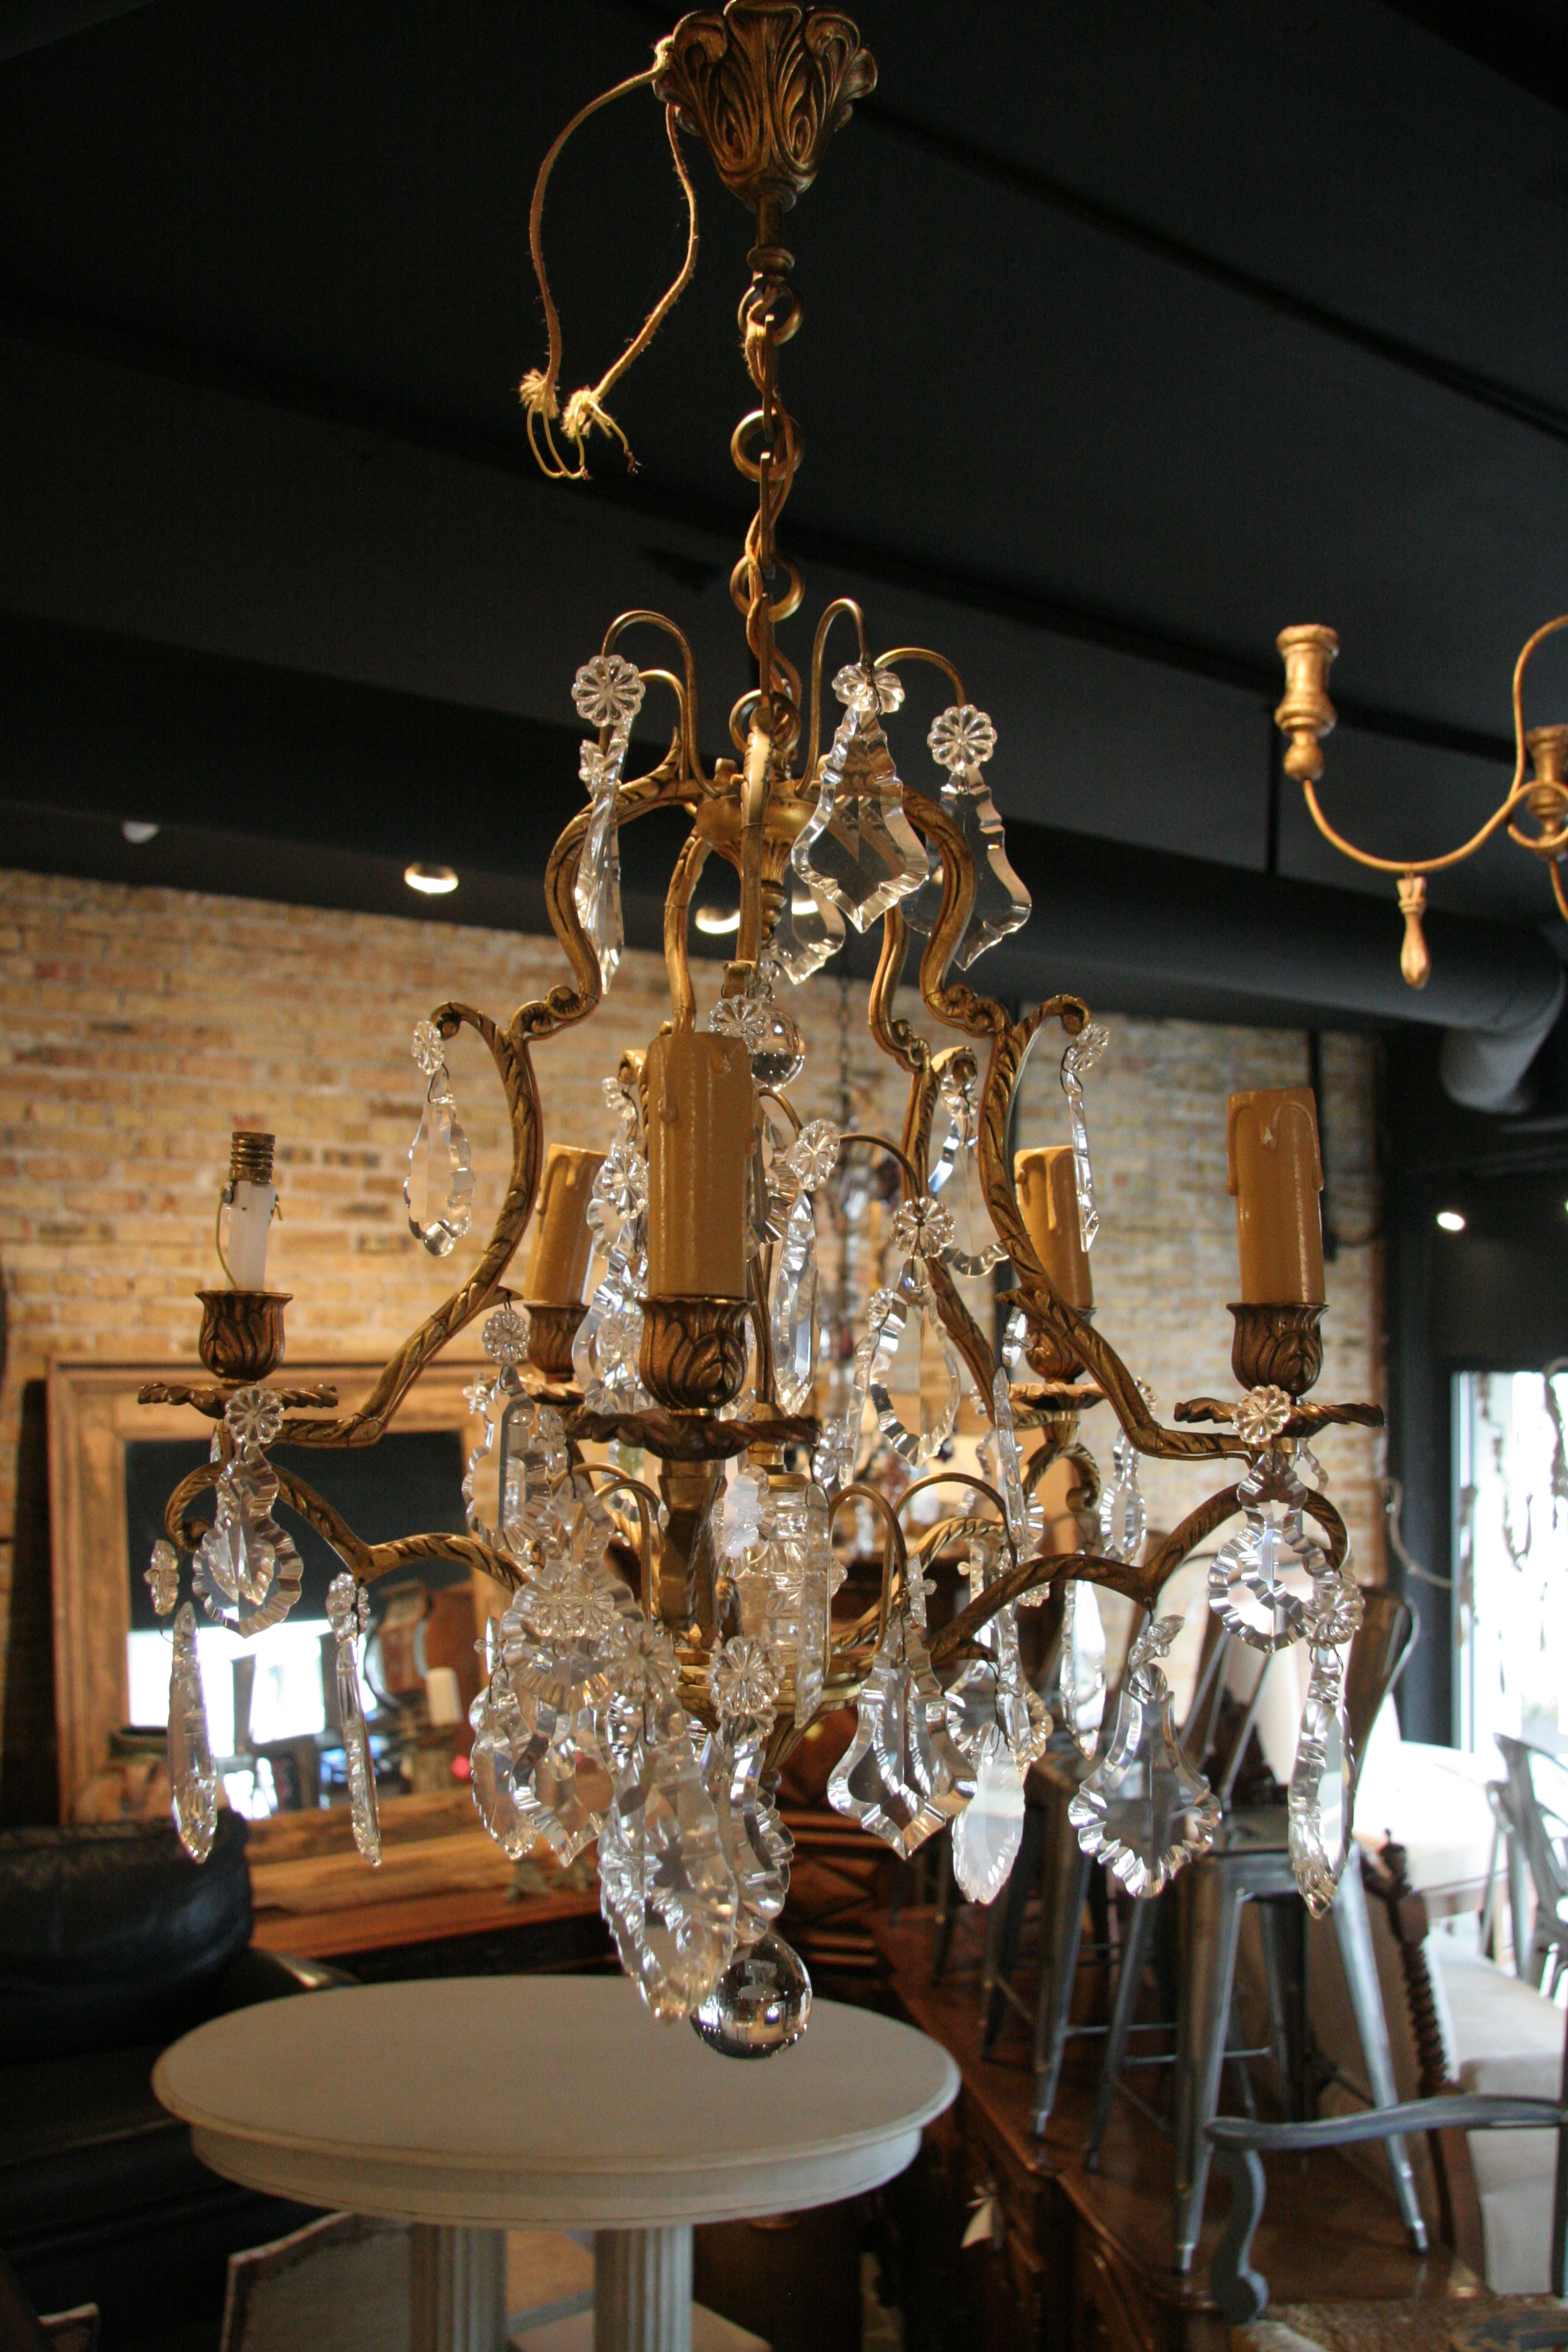 Antique French 5 Light Brass And Crystal Chandelier With Regard To Antique French Chandeliers (View 3 of 15)